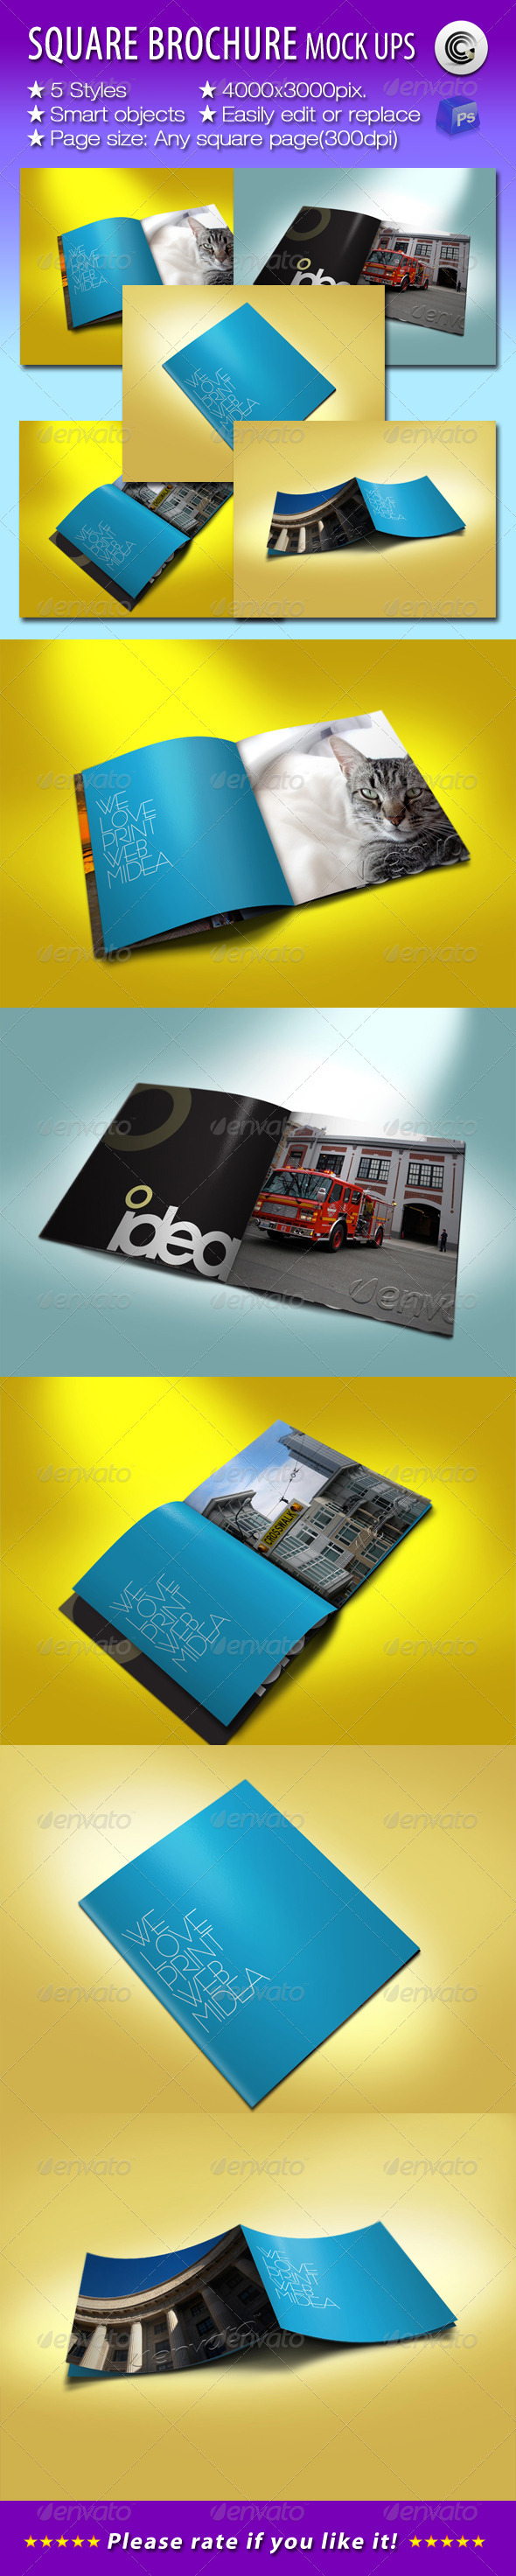 GraphicRiver Square Brochures Preview Mock-ups 808105